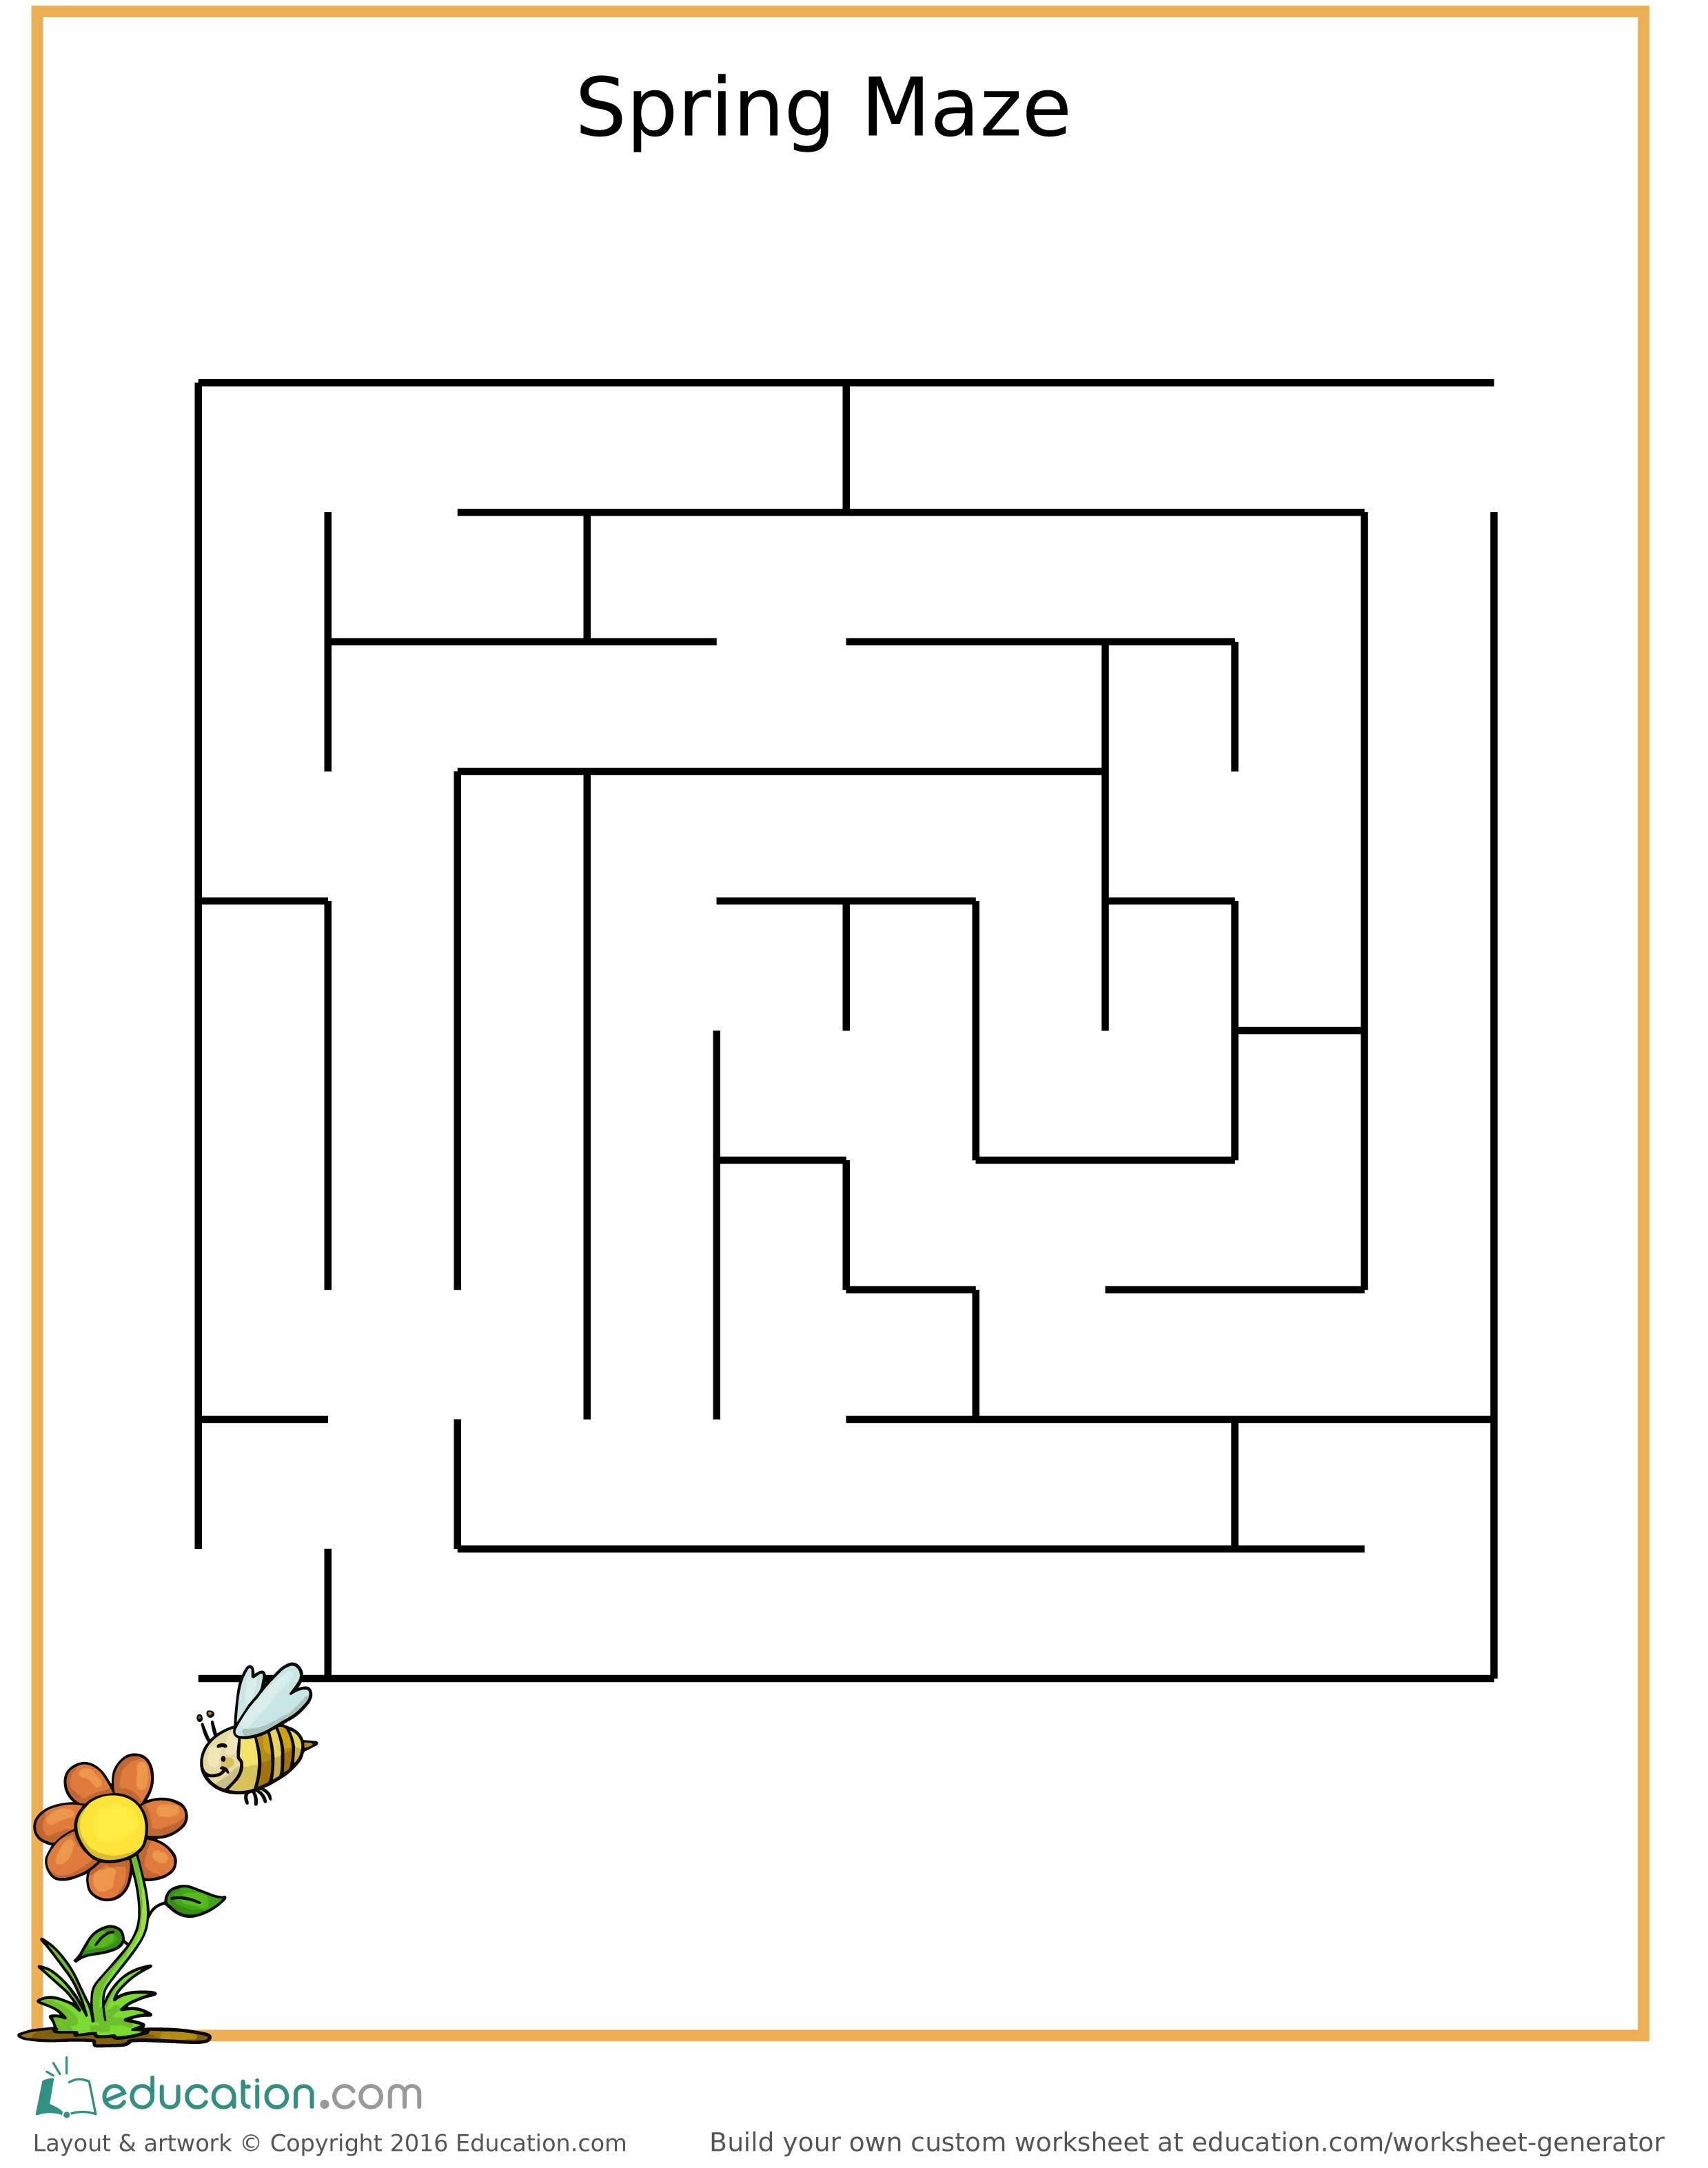 Fun Spring Maze For Children Free Printable